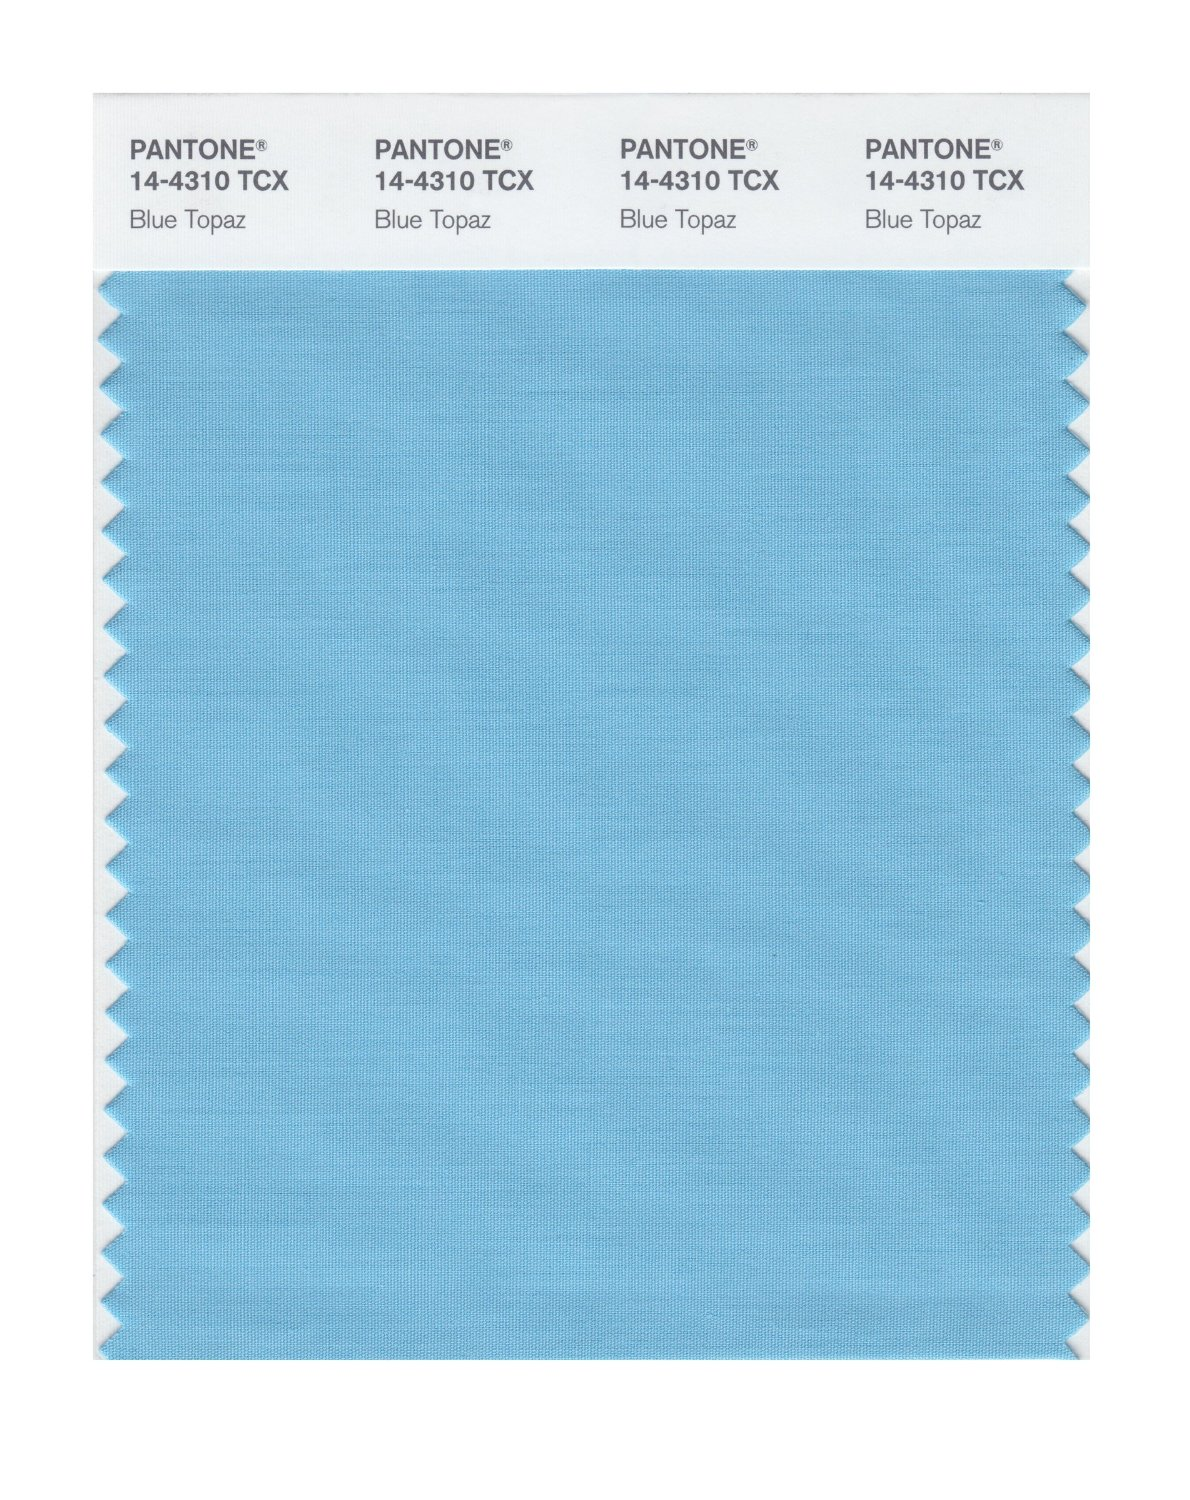 Pantone Smart Swatch 14-4310 Blue Topaz